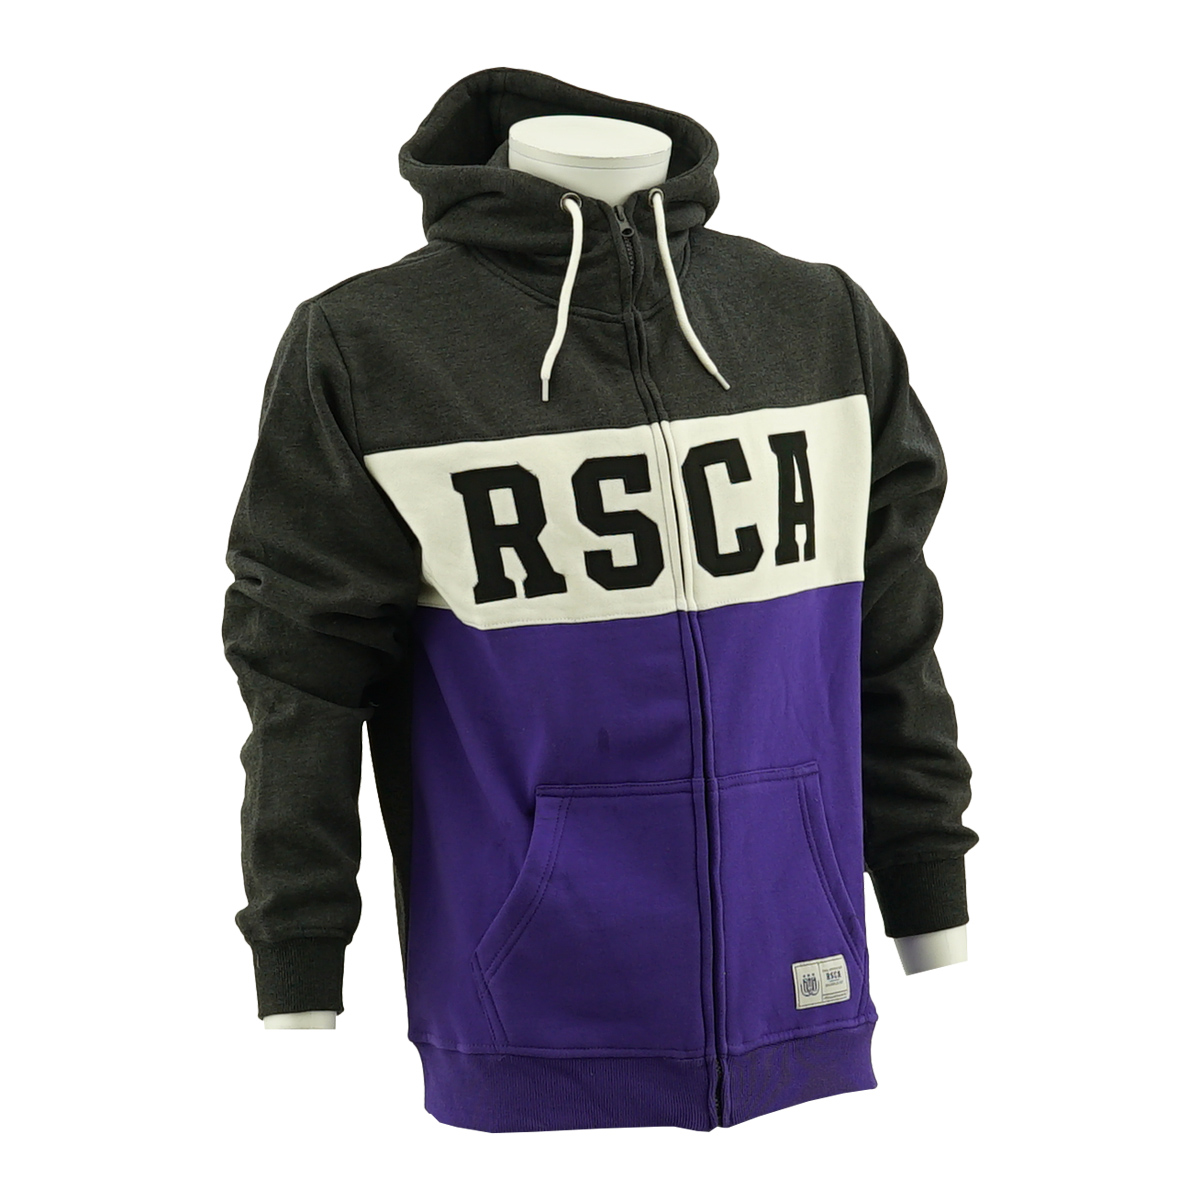 RSCA Sweatvest Met Kap Heren South Block